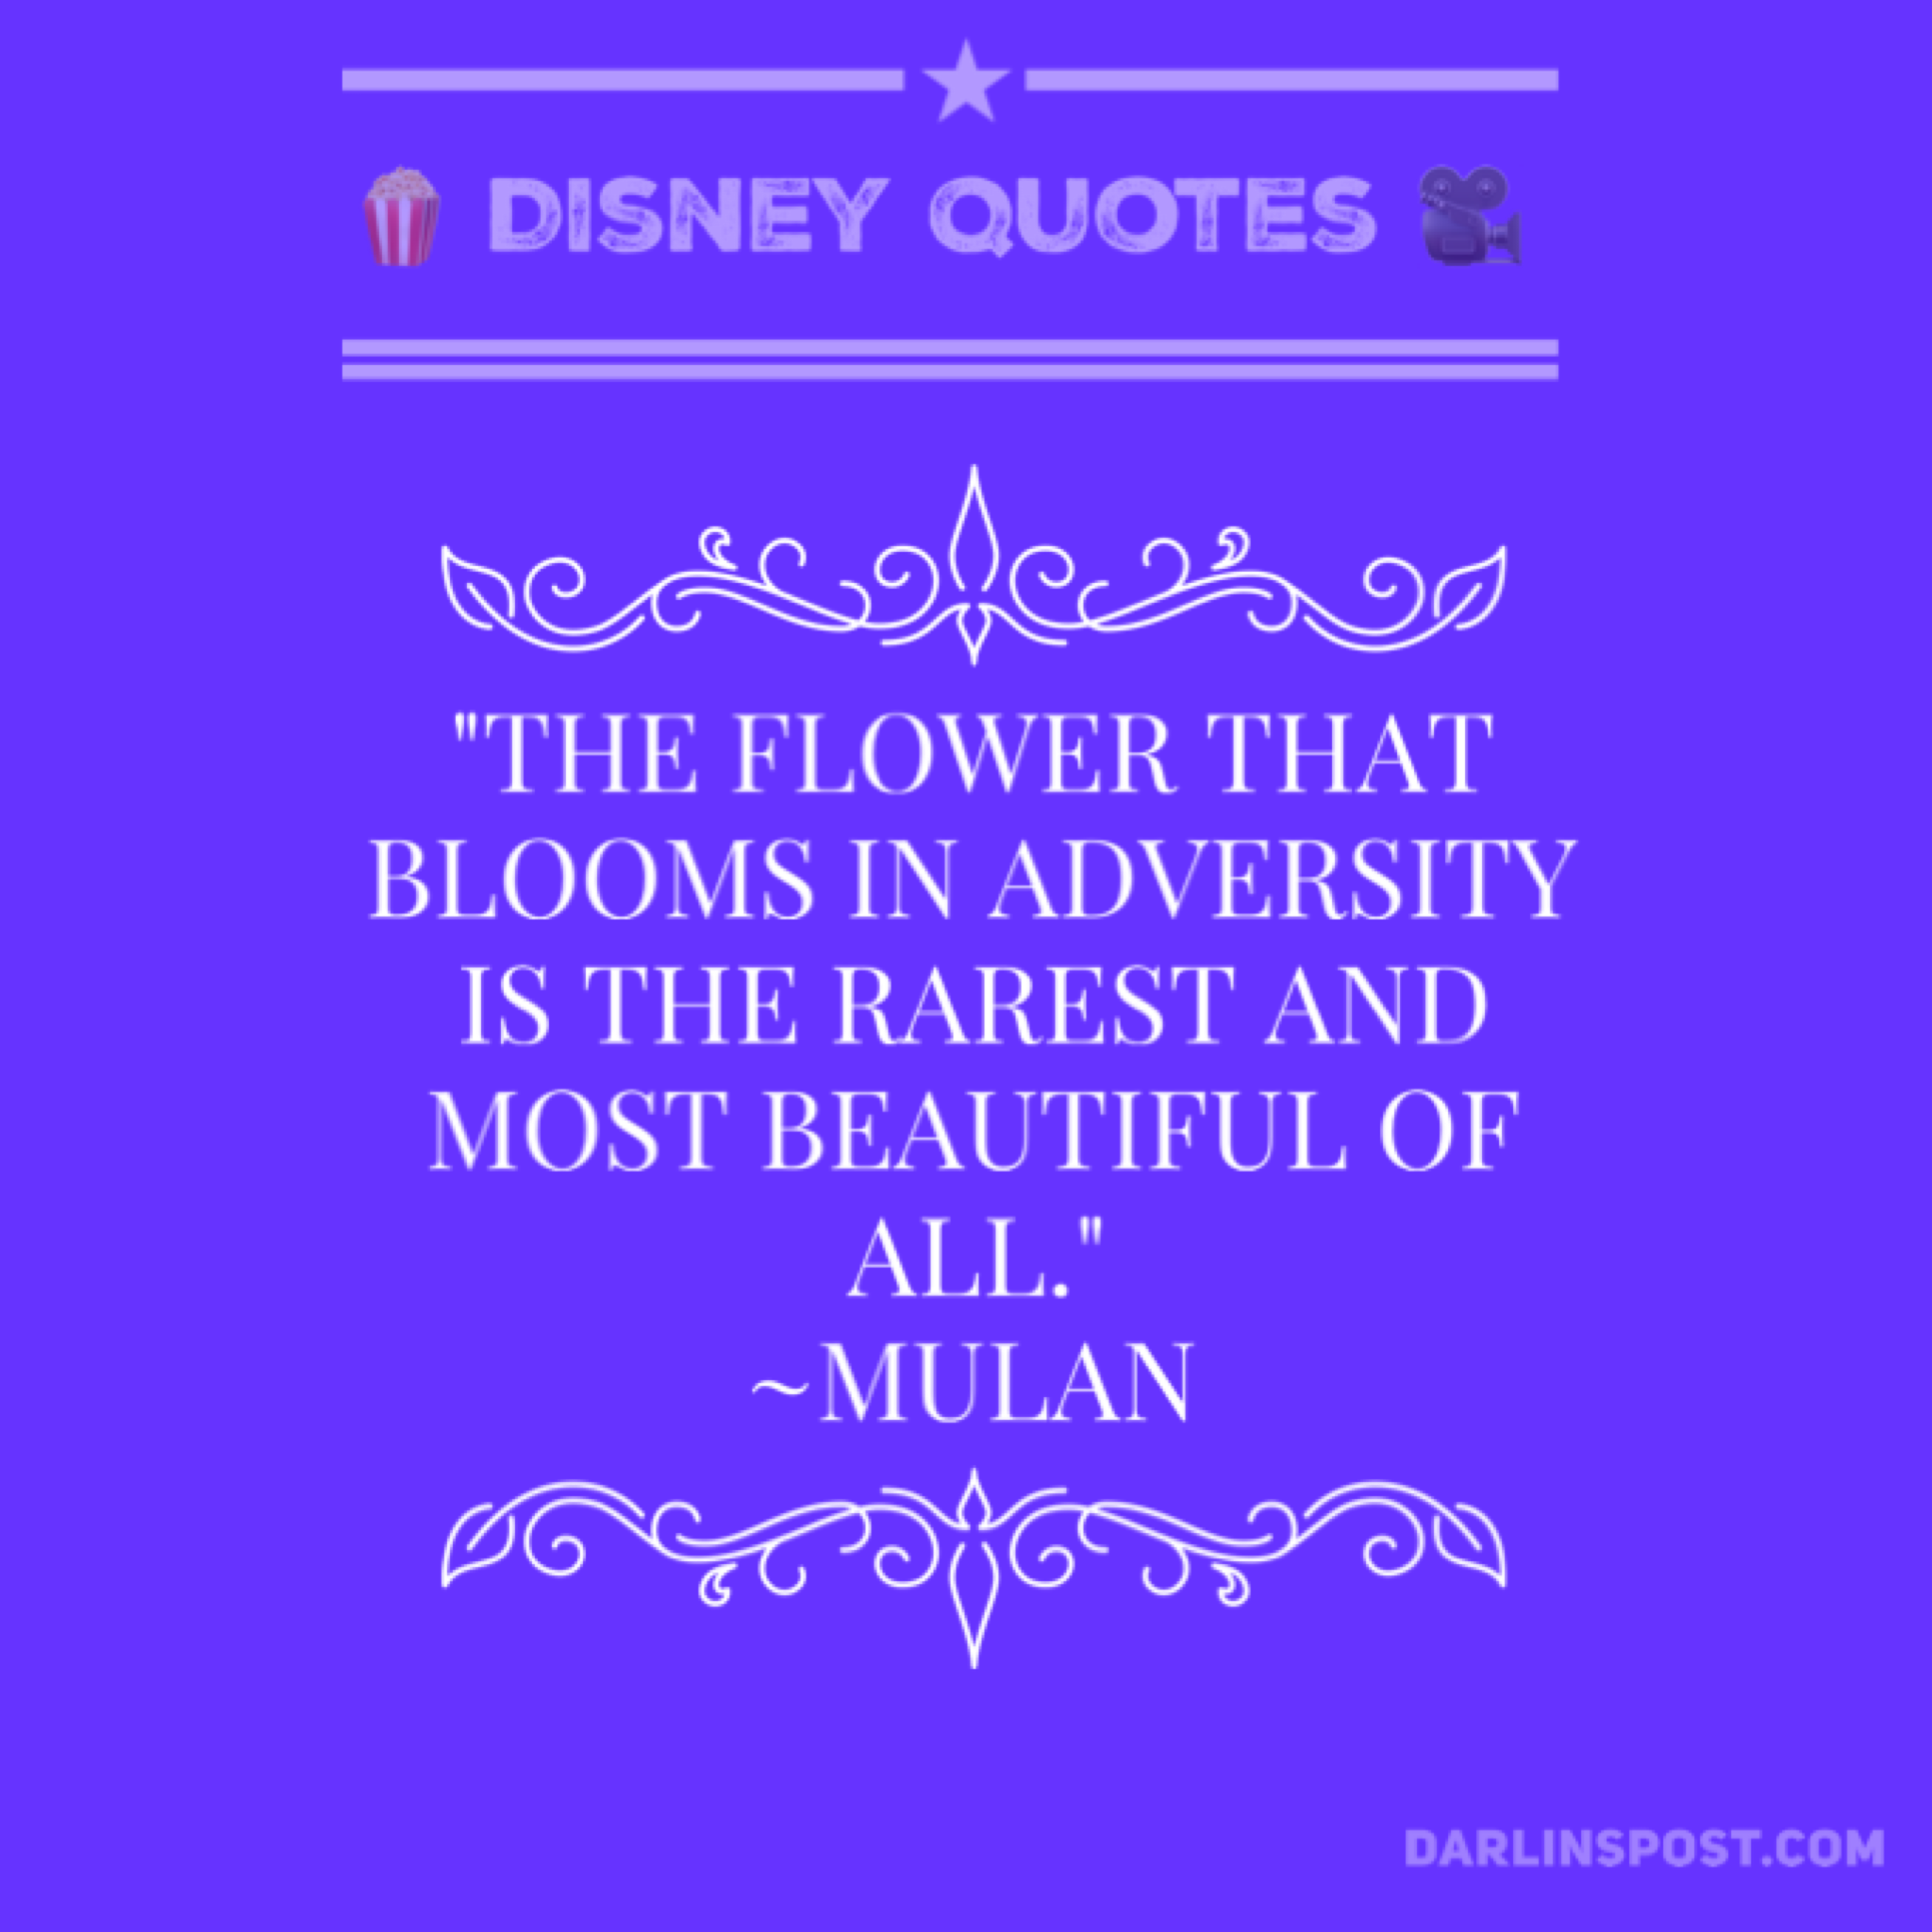 22 Disney Delightful Quotes And Sayings From Movies In 2020 Quotes Disney Quotes My Dream Came True